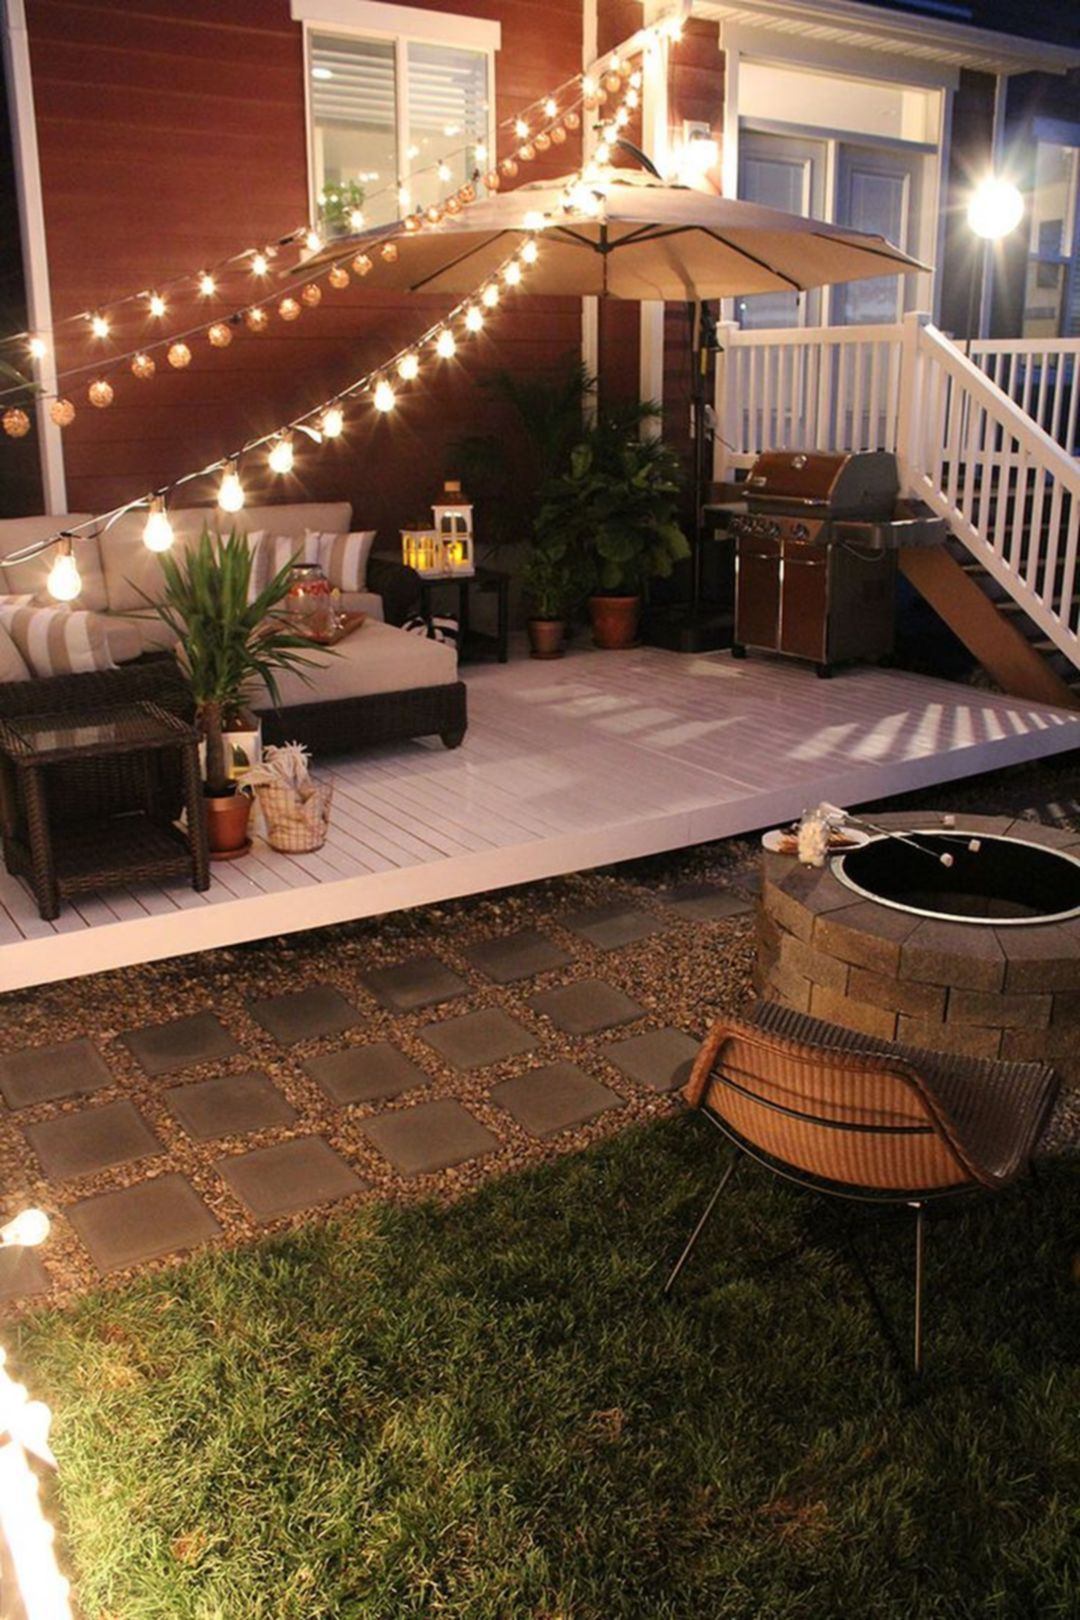 Top 20 Wonderful Deck Decorating Ideas On a Budget ...